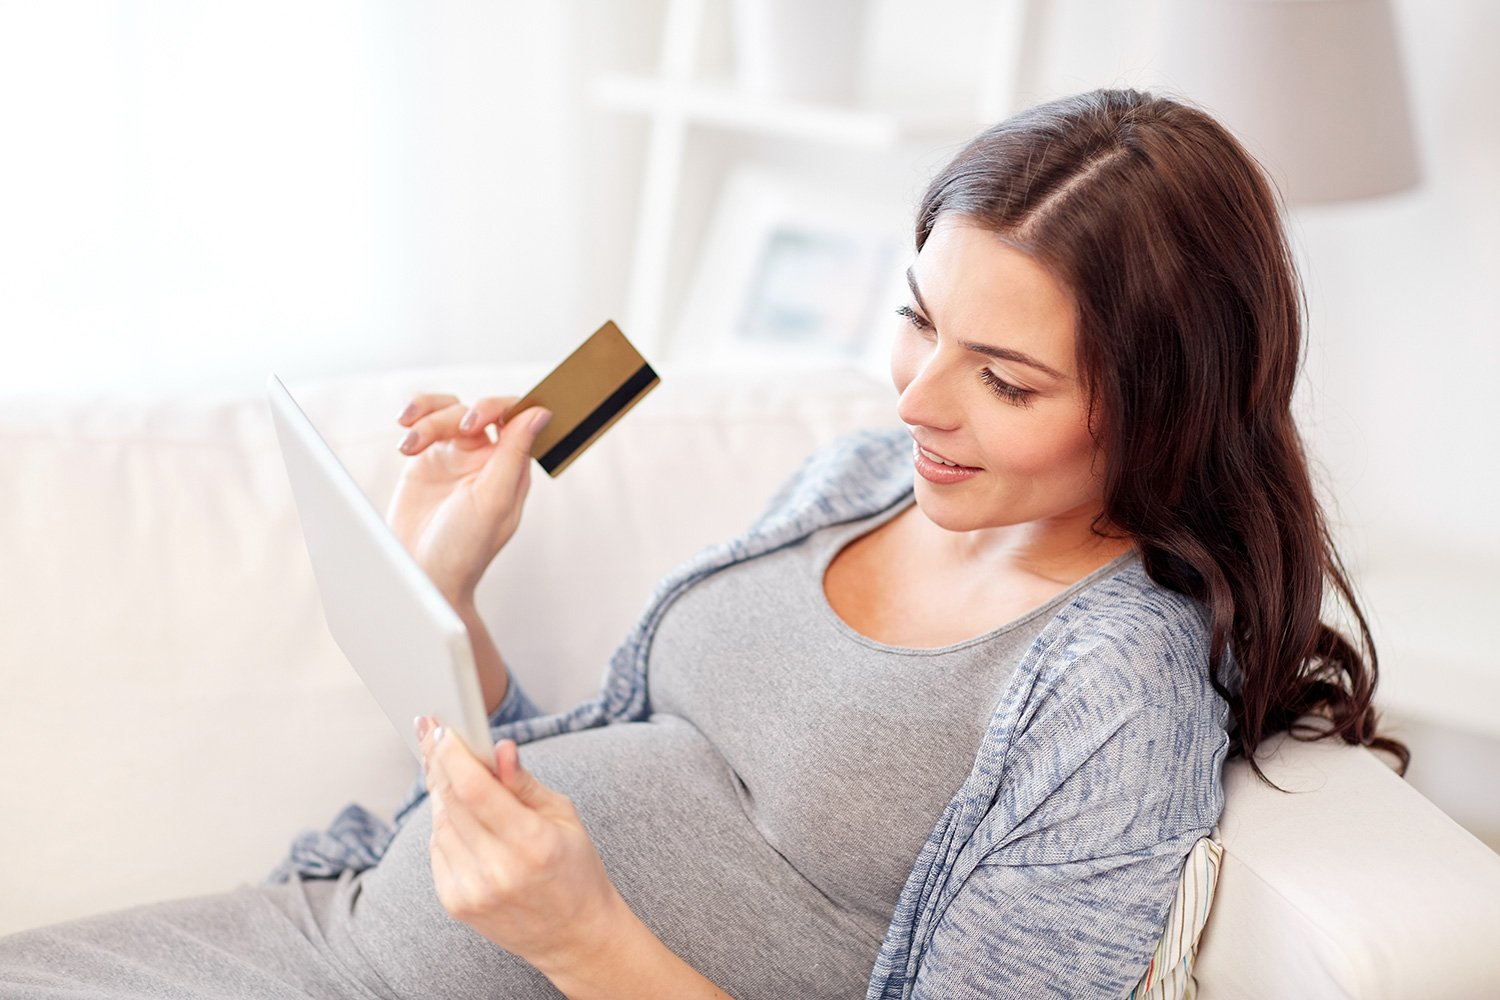 pregnancy, online shopping, technology and people concept - happy pregnant woman with tablet pc computer and credit card at home